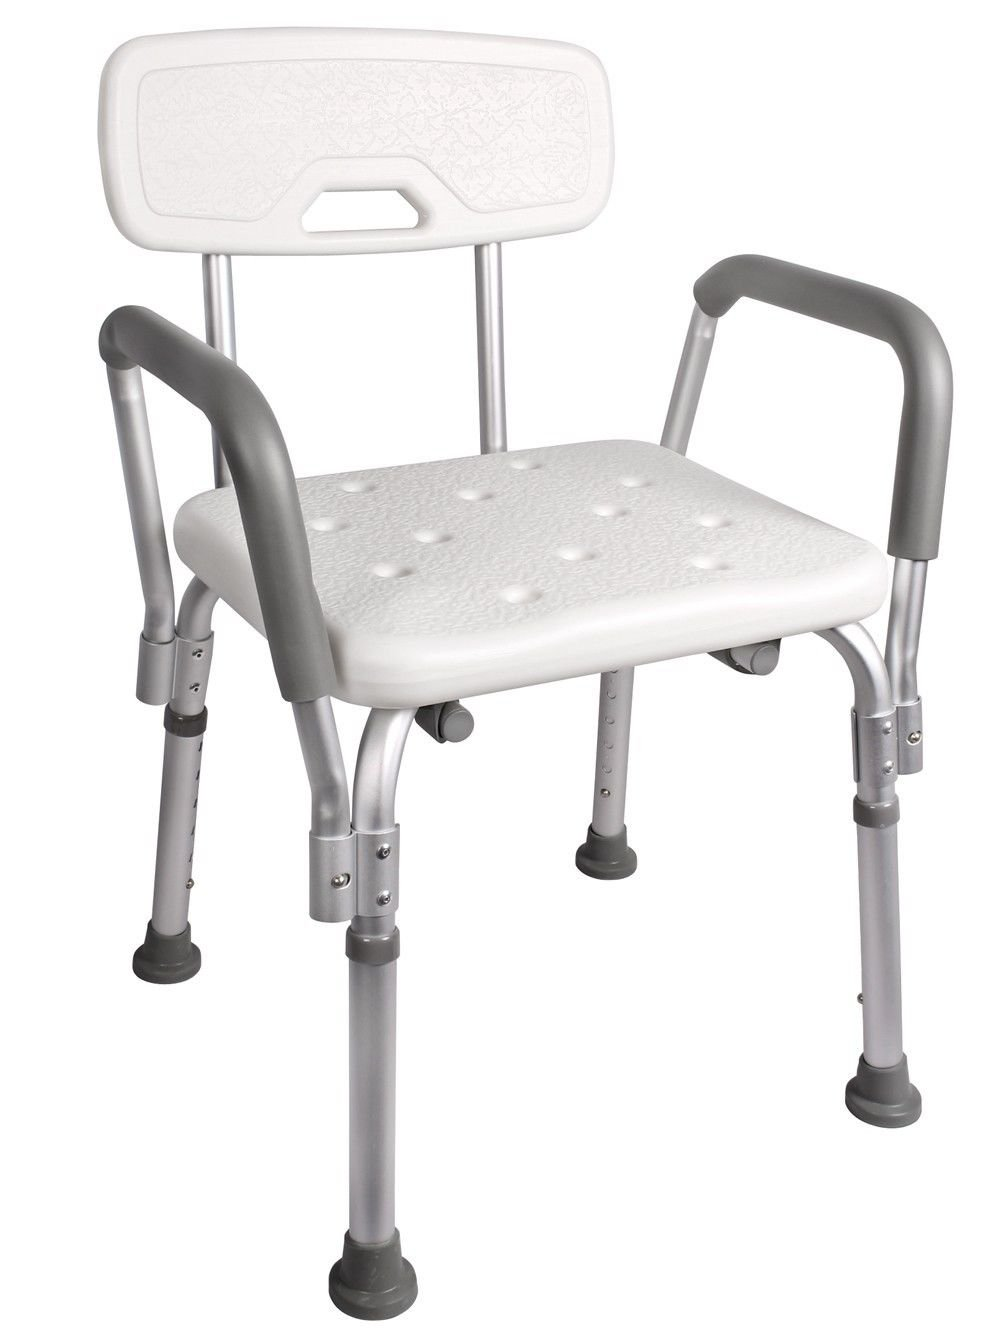 Amazon.com: TMS® Adjustable Medical Shower Chair Bathtub Bench Bath ...